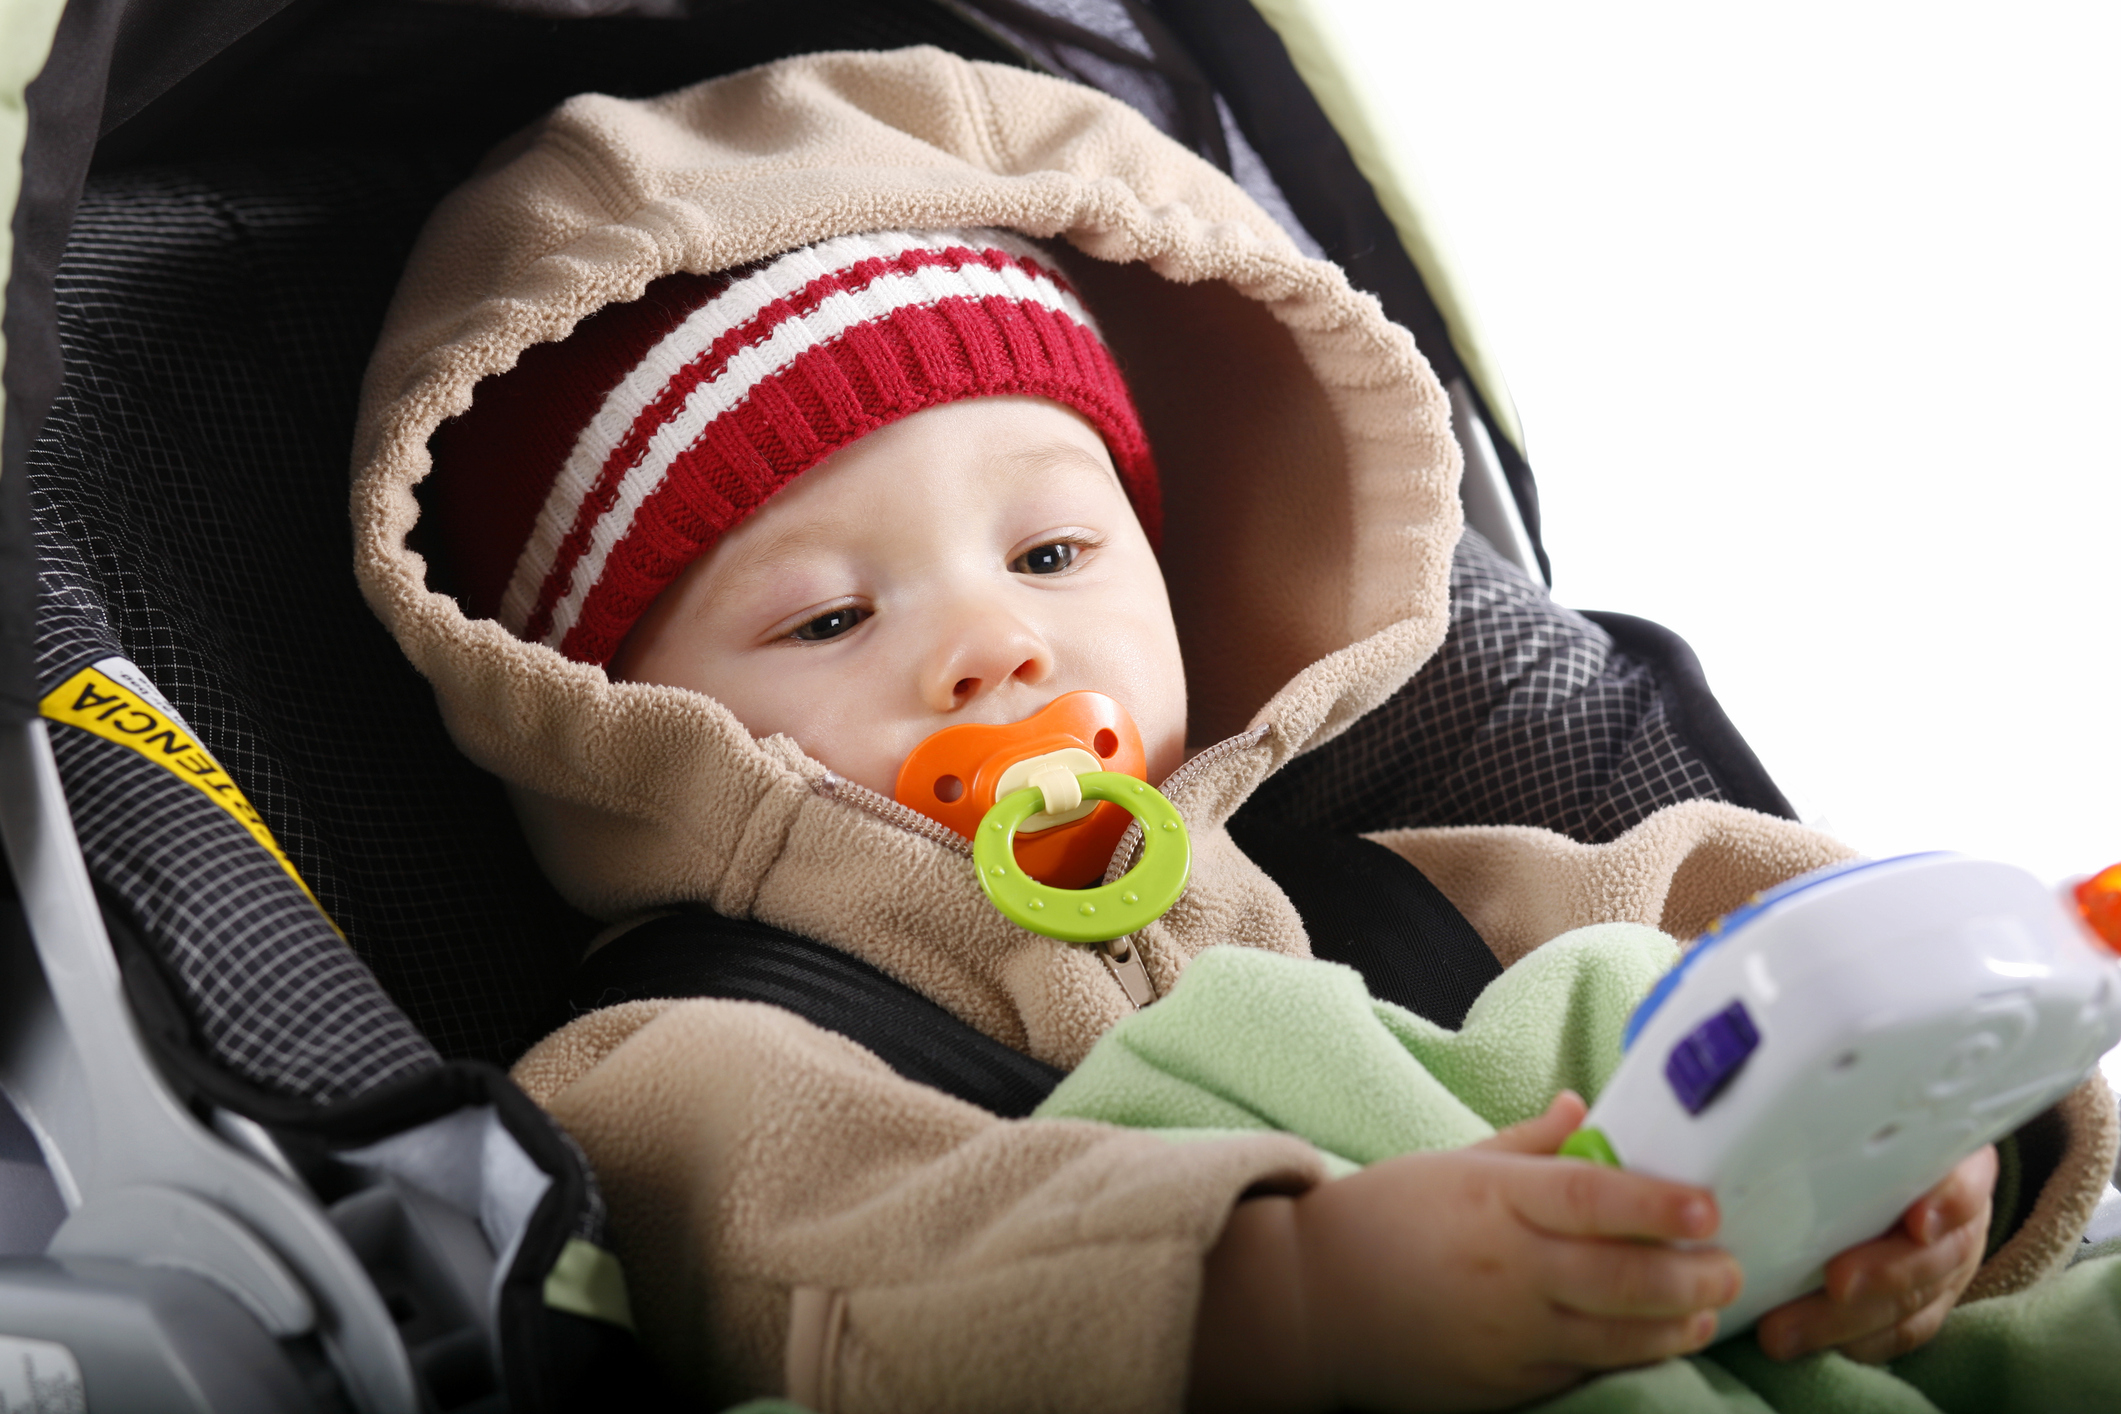 Baby in car seat with toy